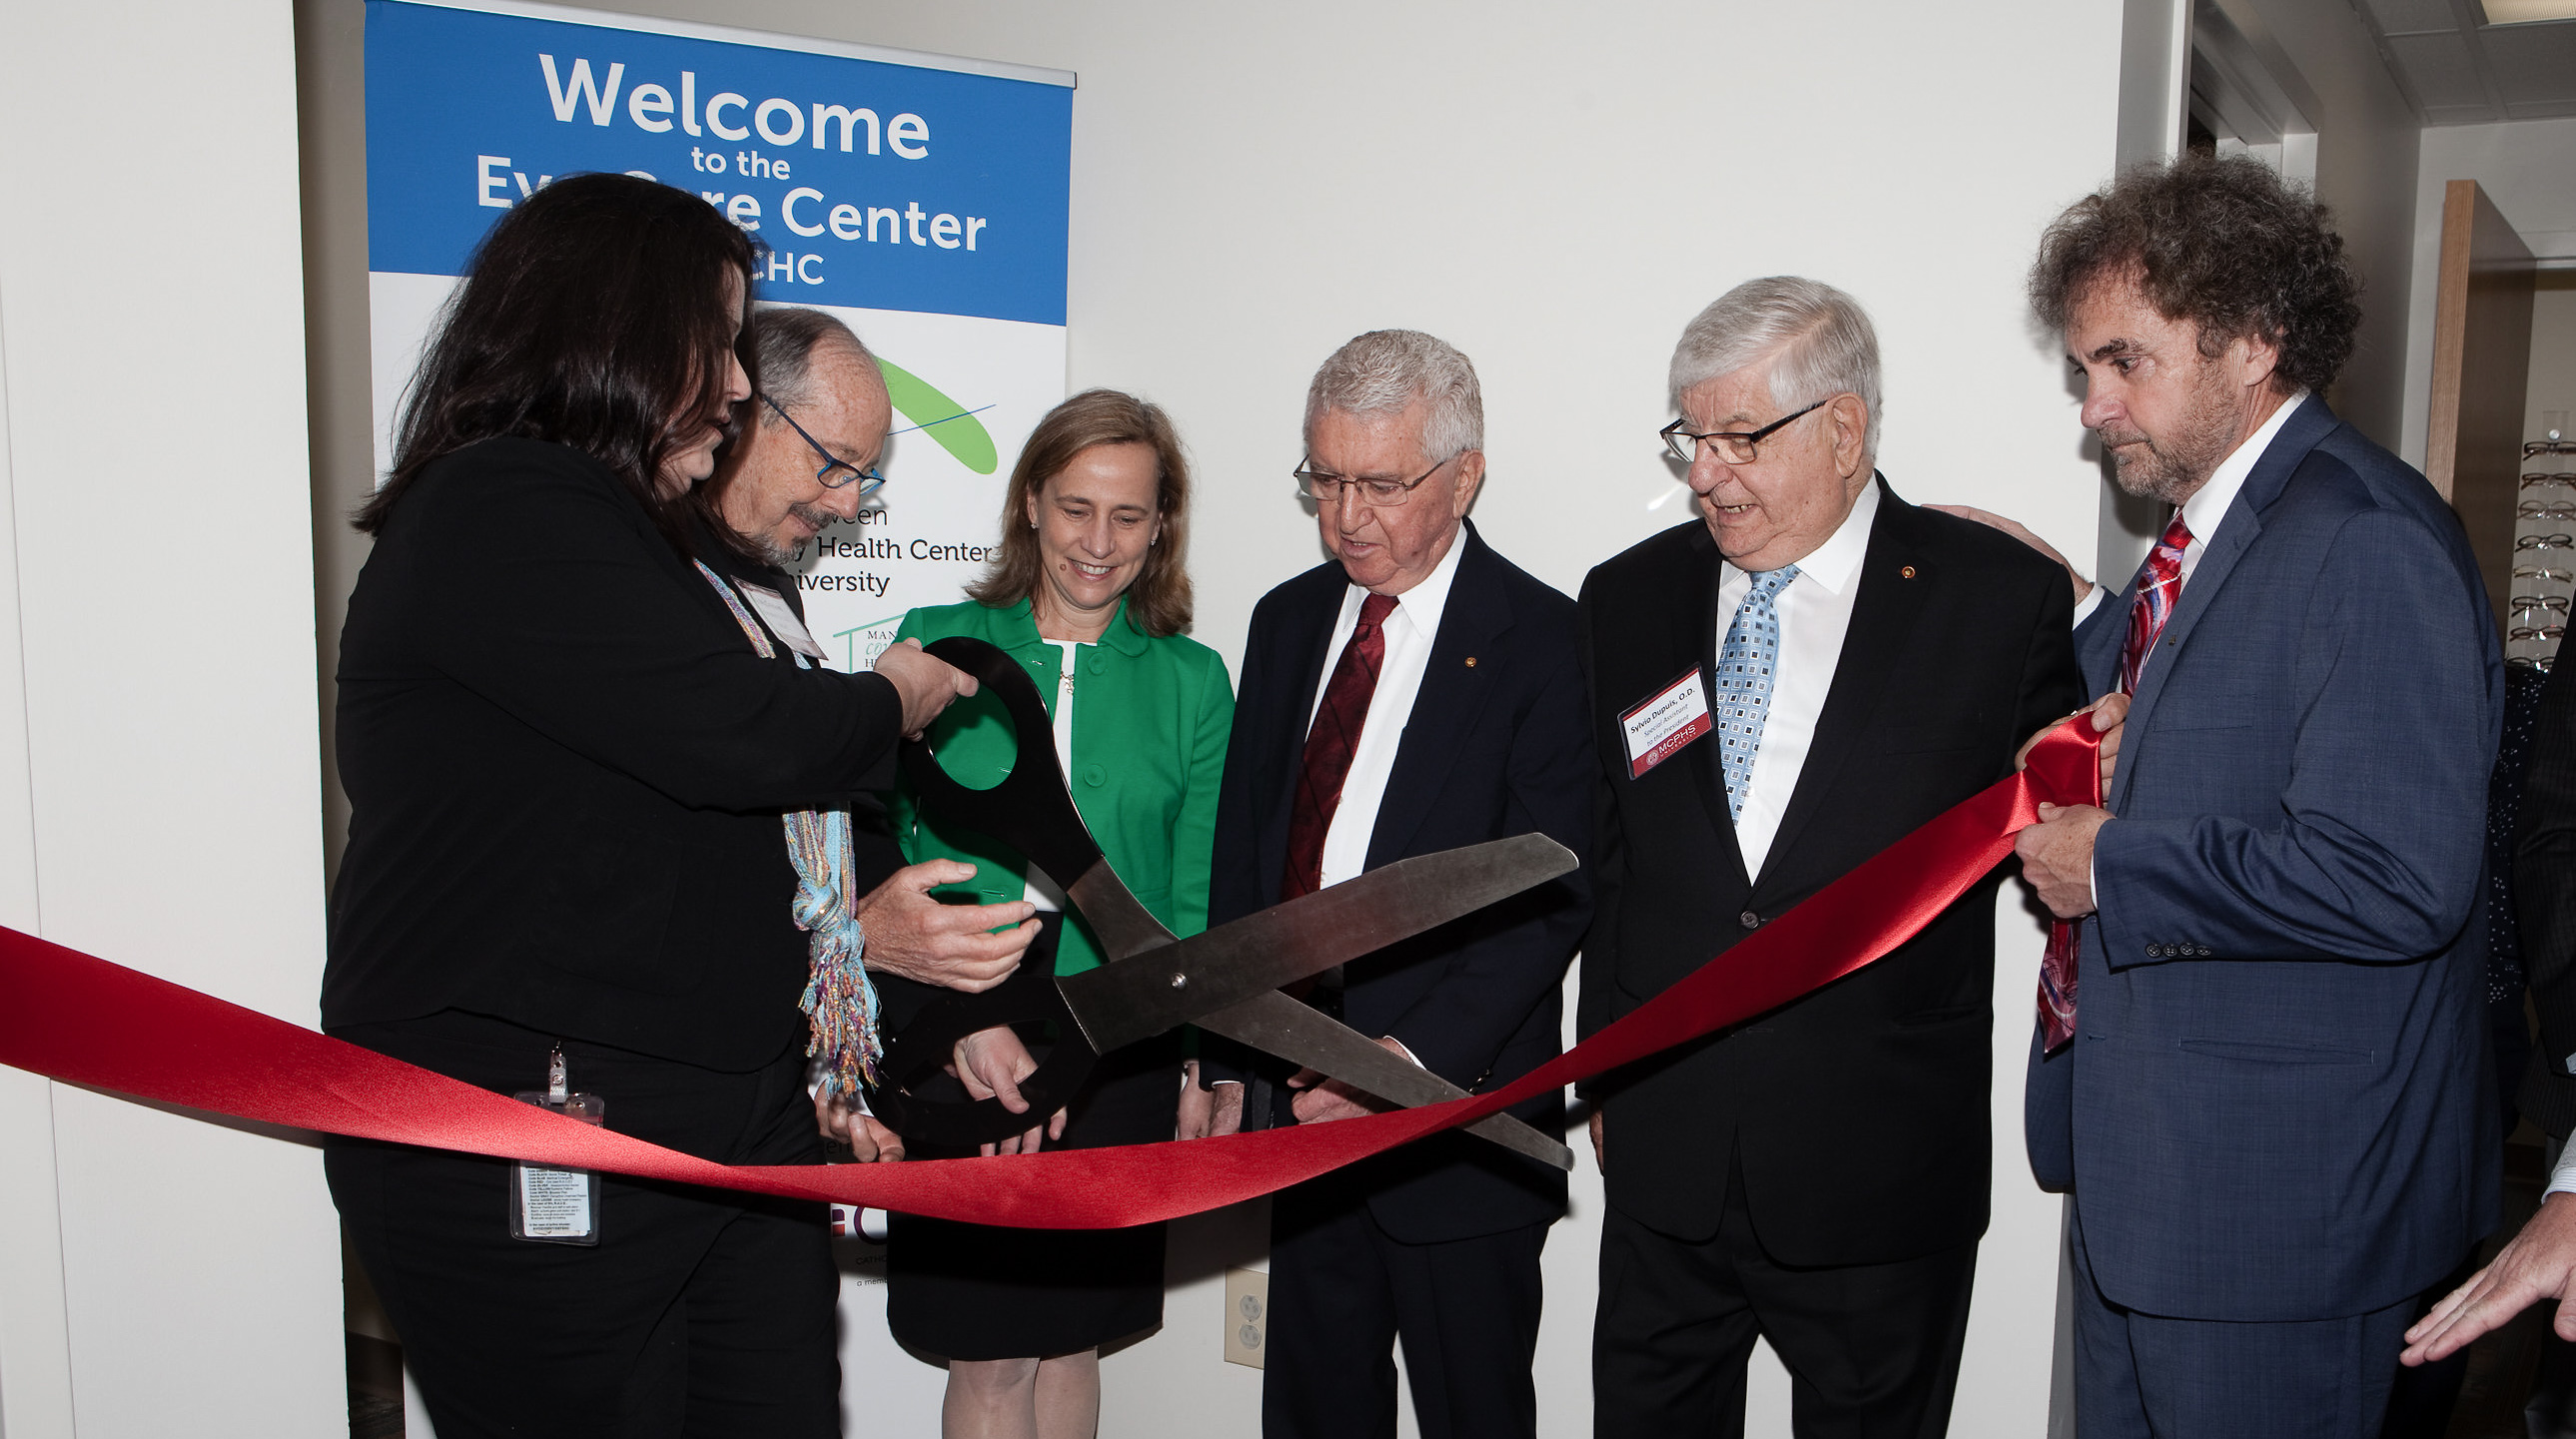 Cutting the ribbon at the opening of the new MCPHS Eye Care Center at Manchester Community Health Center.